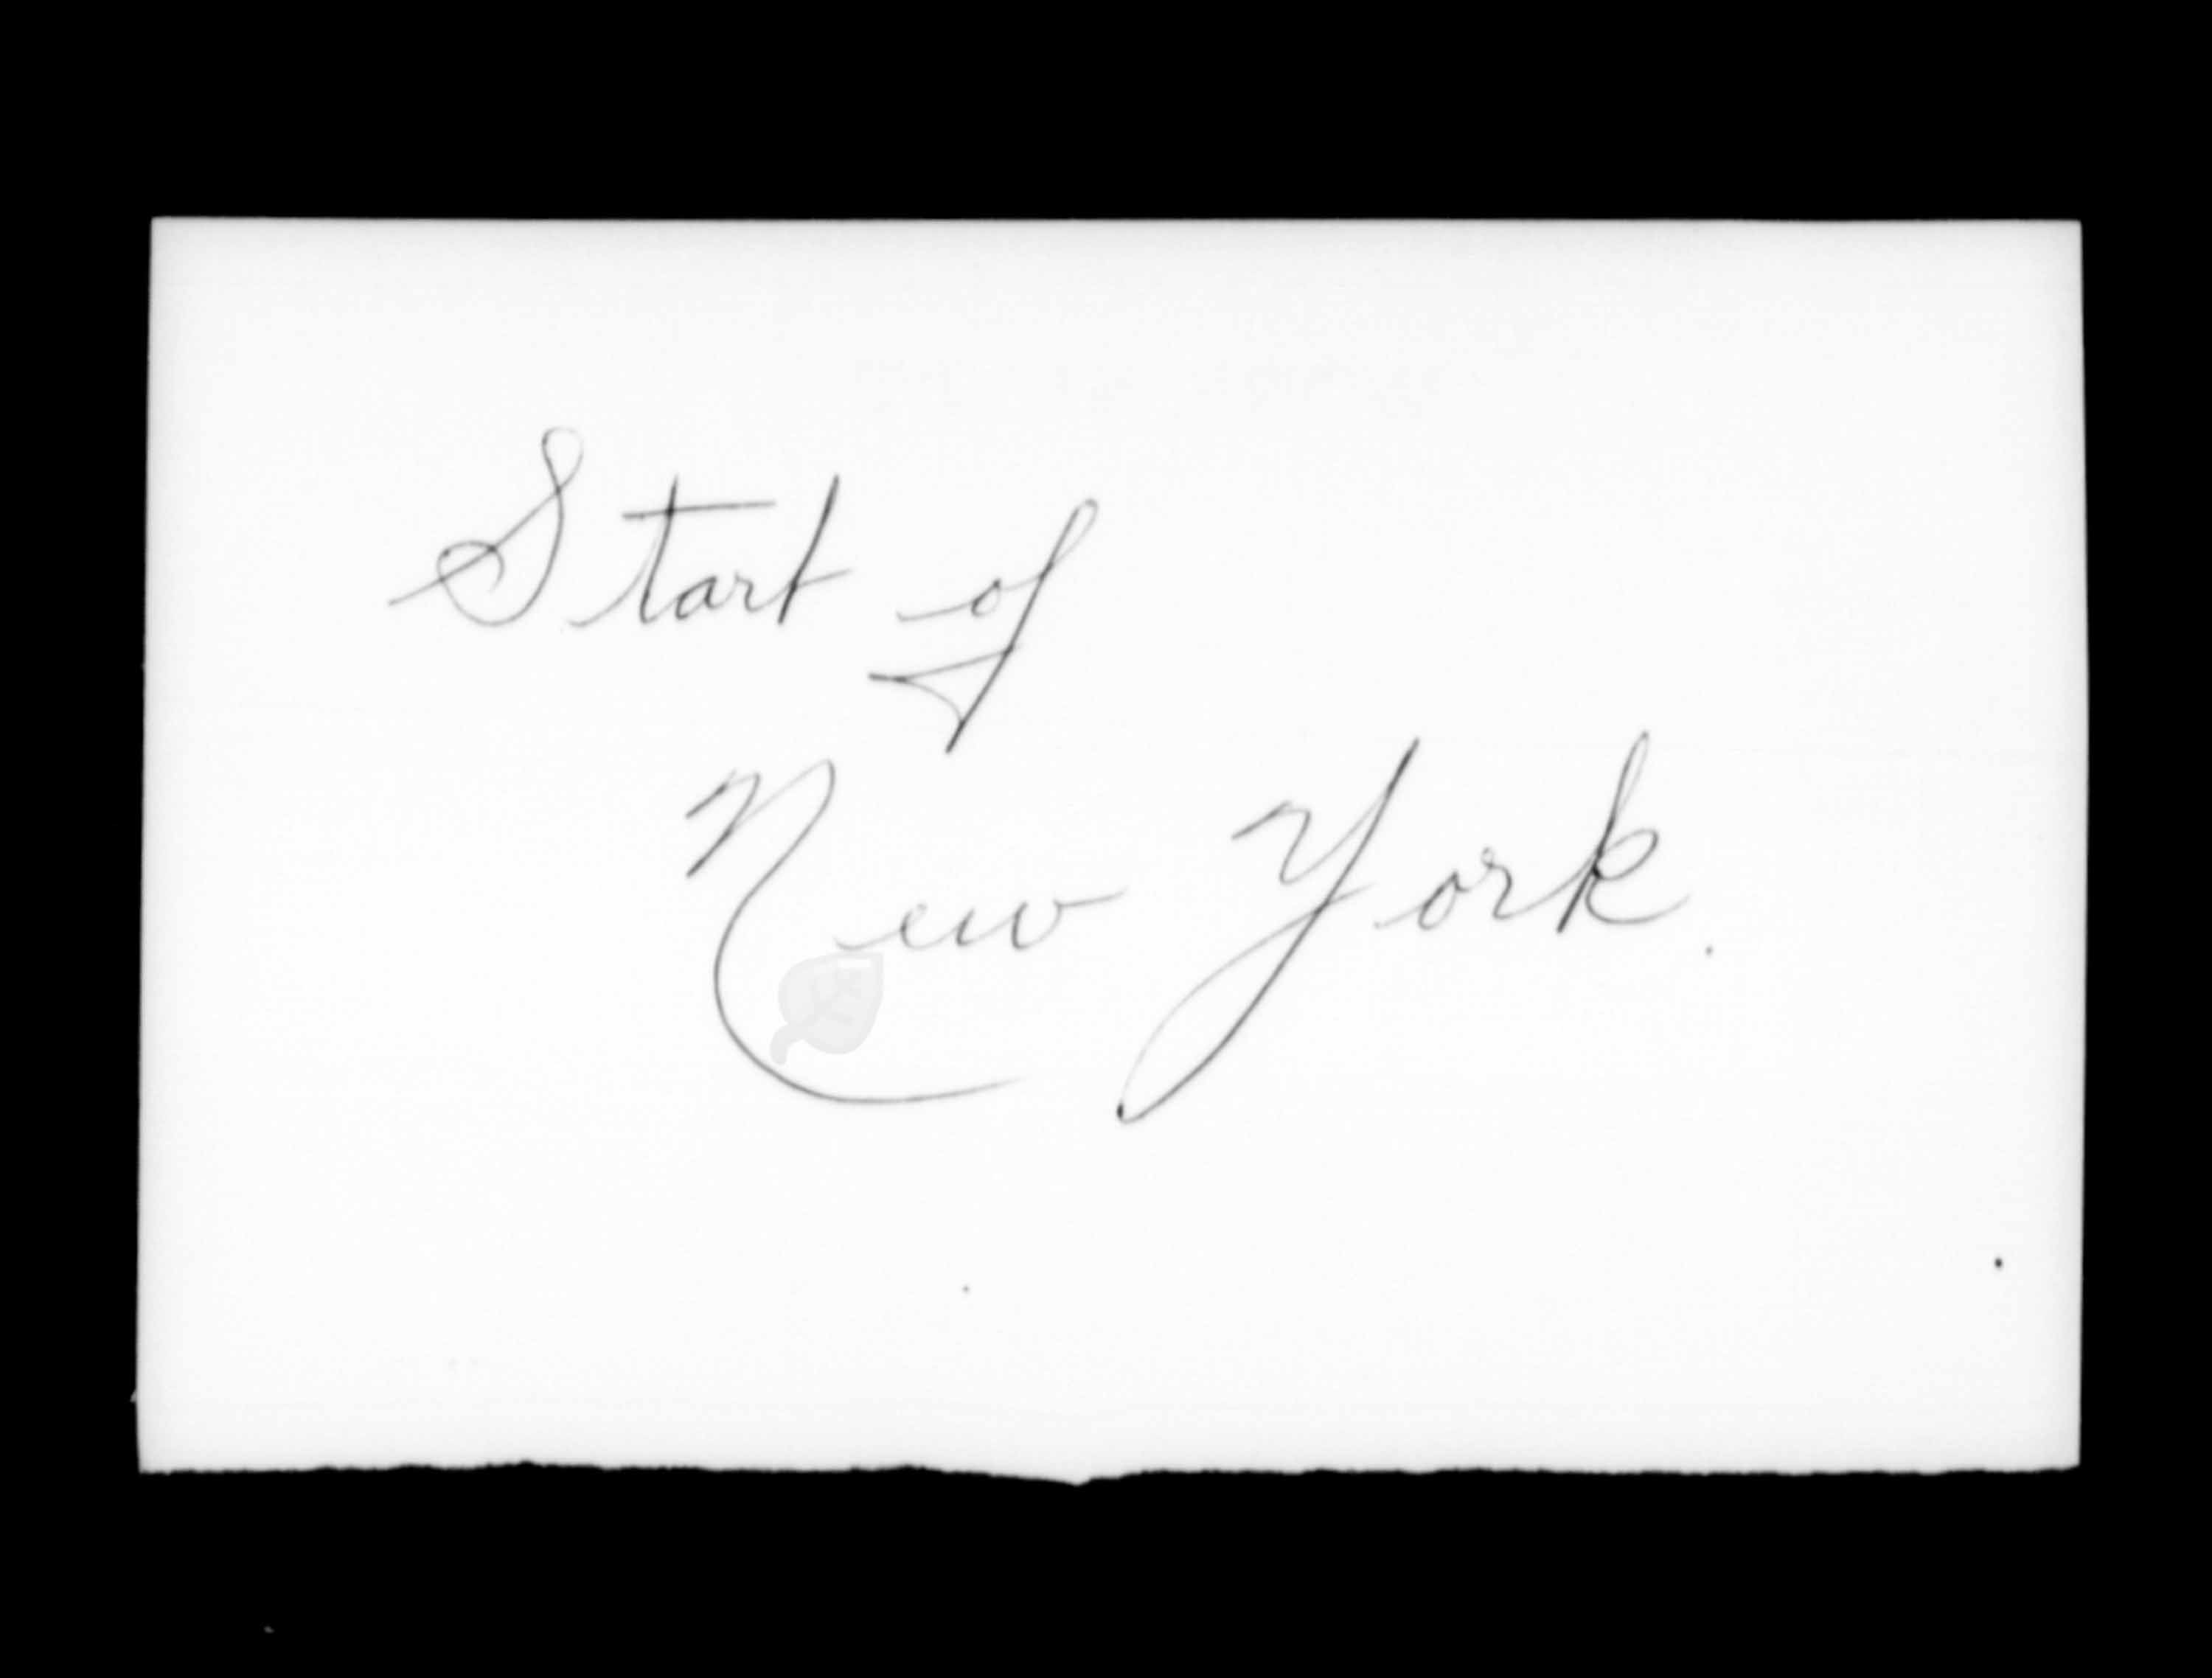 Title: Passenger Lists: New York (1925-1935) - Mikan Number: 161343 - Microform: t-14923